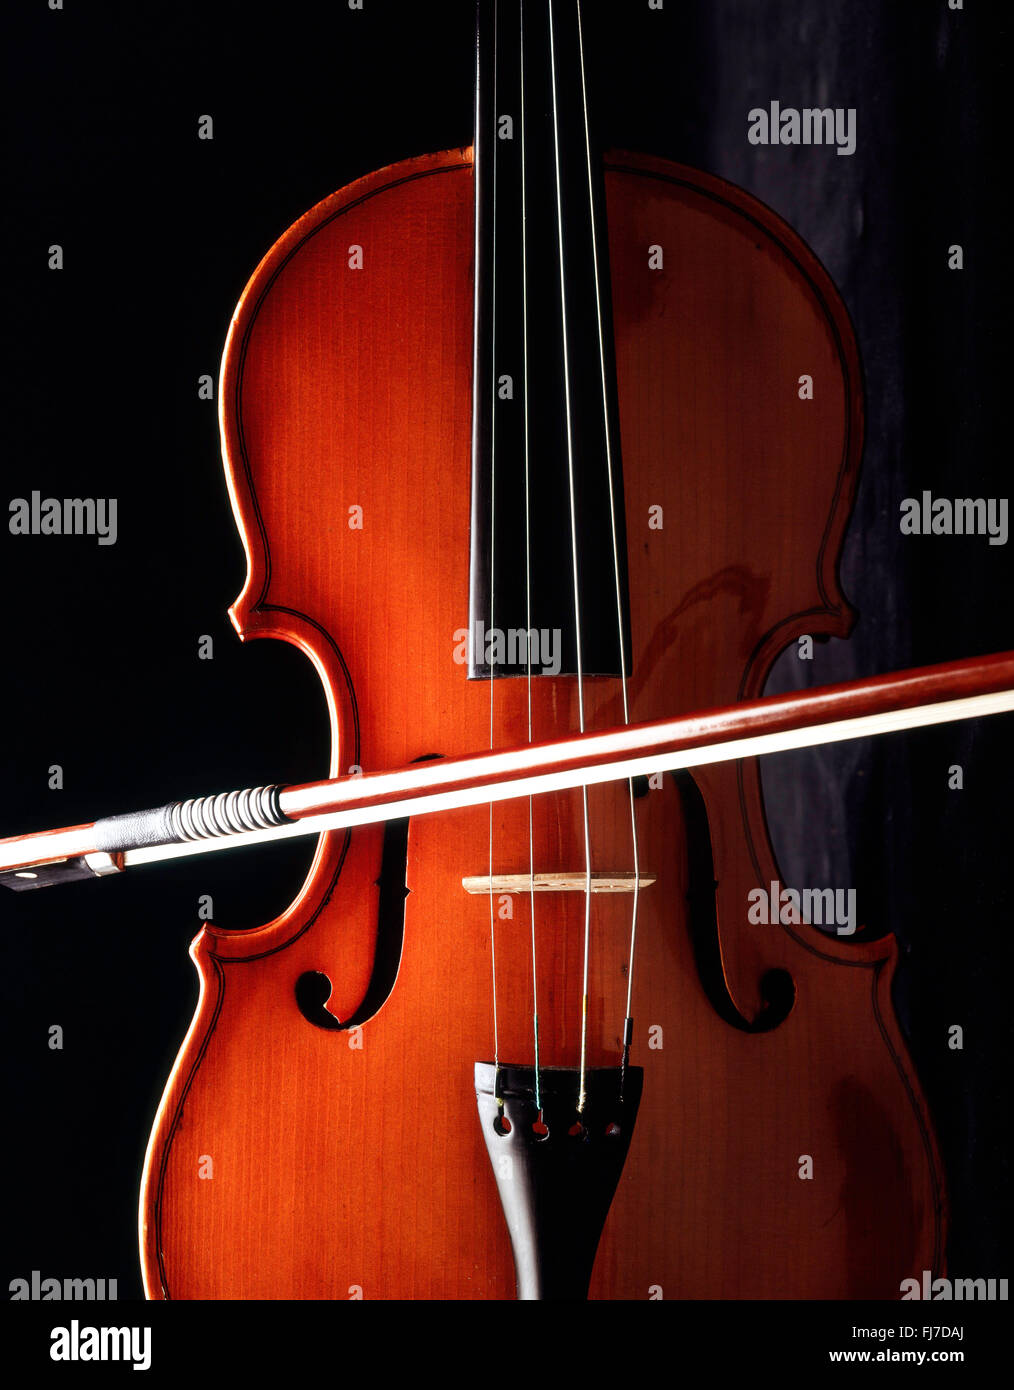 Still-life of violin and bow with black background, London, England, United Kingdom - Stock Image